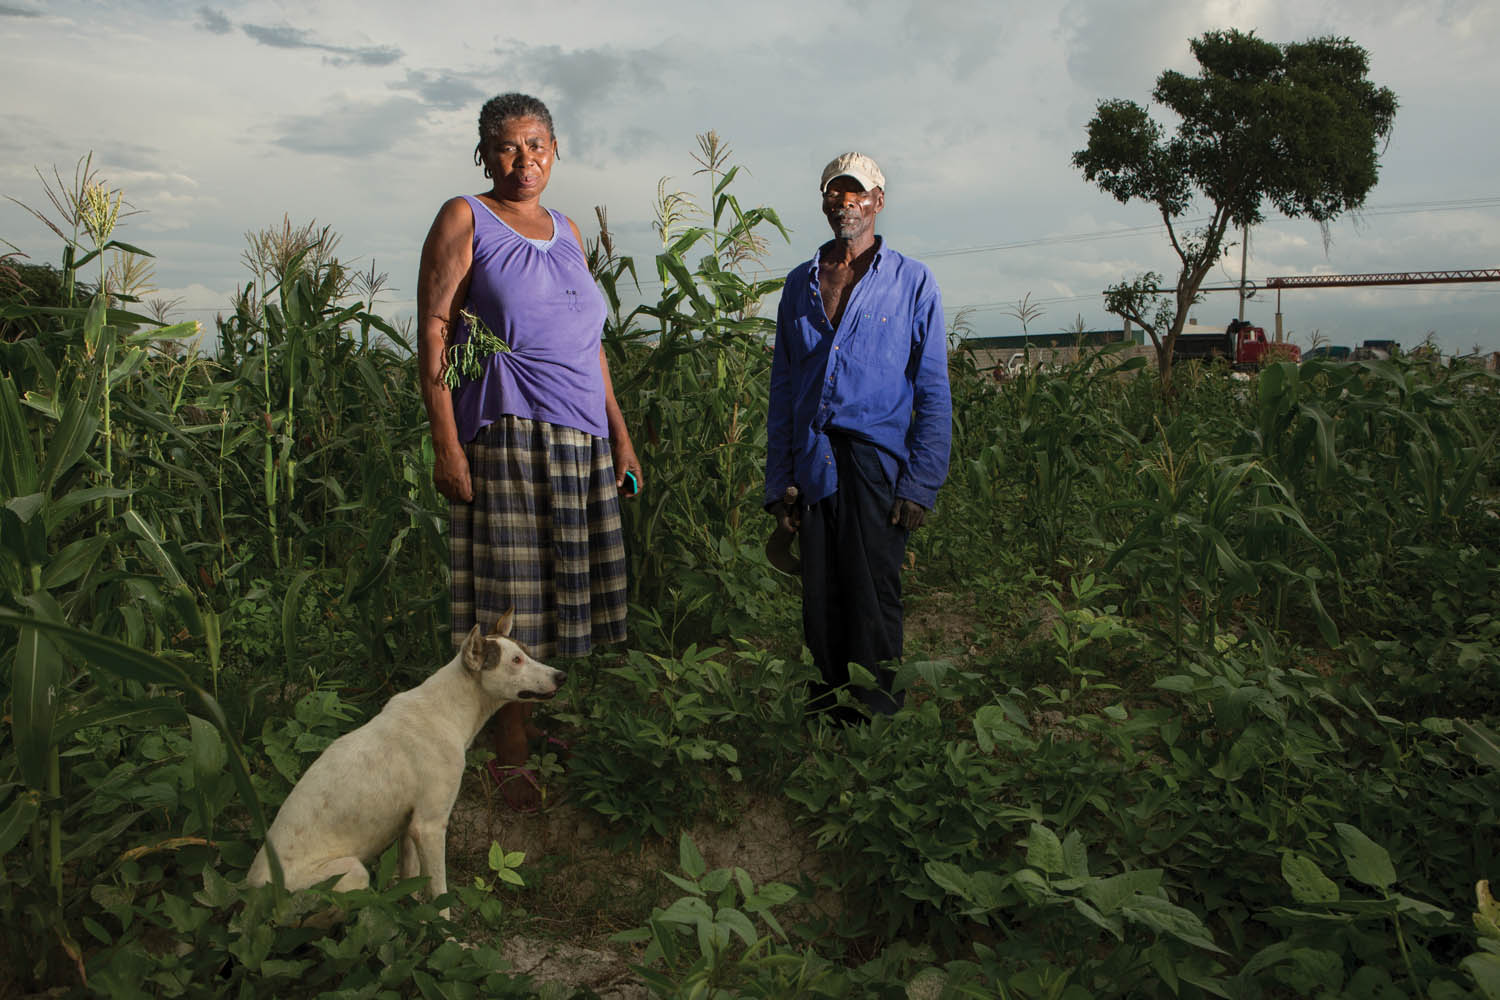 "Jean Leon and her husband, Michelet Alexandre, in their field near Corail. They arrived in 1996, when there were only three families in the area. Now their property, where they grow crops and raise cattle, is surrounded by a fast-developing neighborhood. ""We came from the countryside to find life, and we certainly found life,"" says Leon. Photo by Allison Shelley"